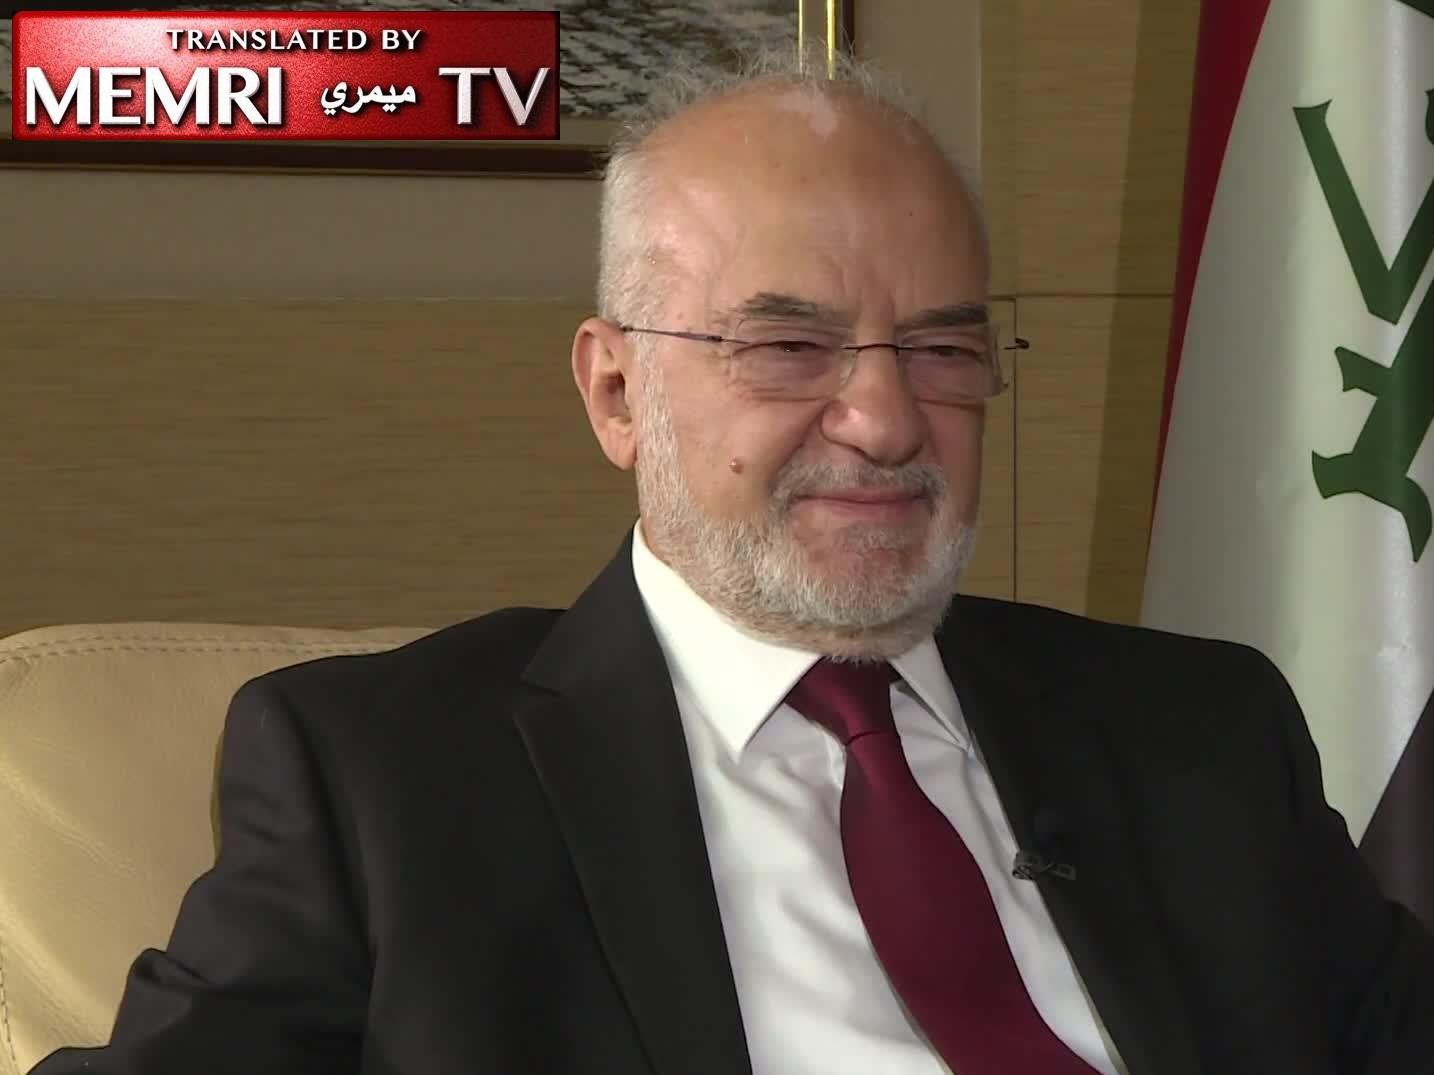 Iraqi Foreign Minister Ibrahim Al-Jaafari: America's Founding Fathers Would Not Make